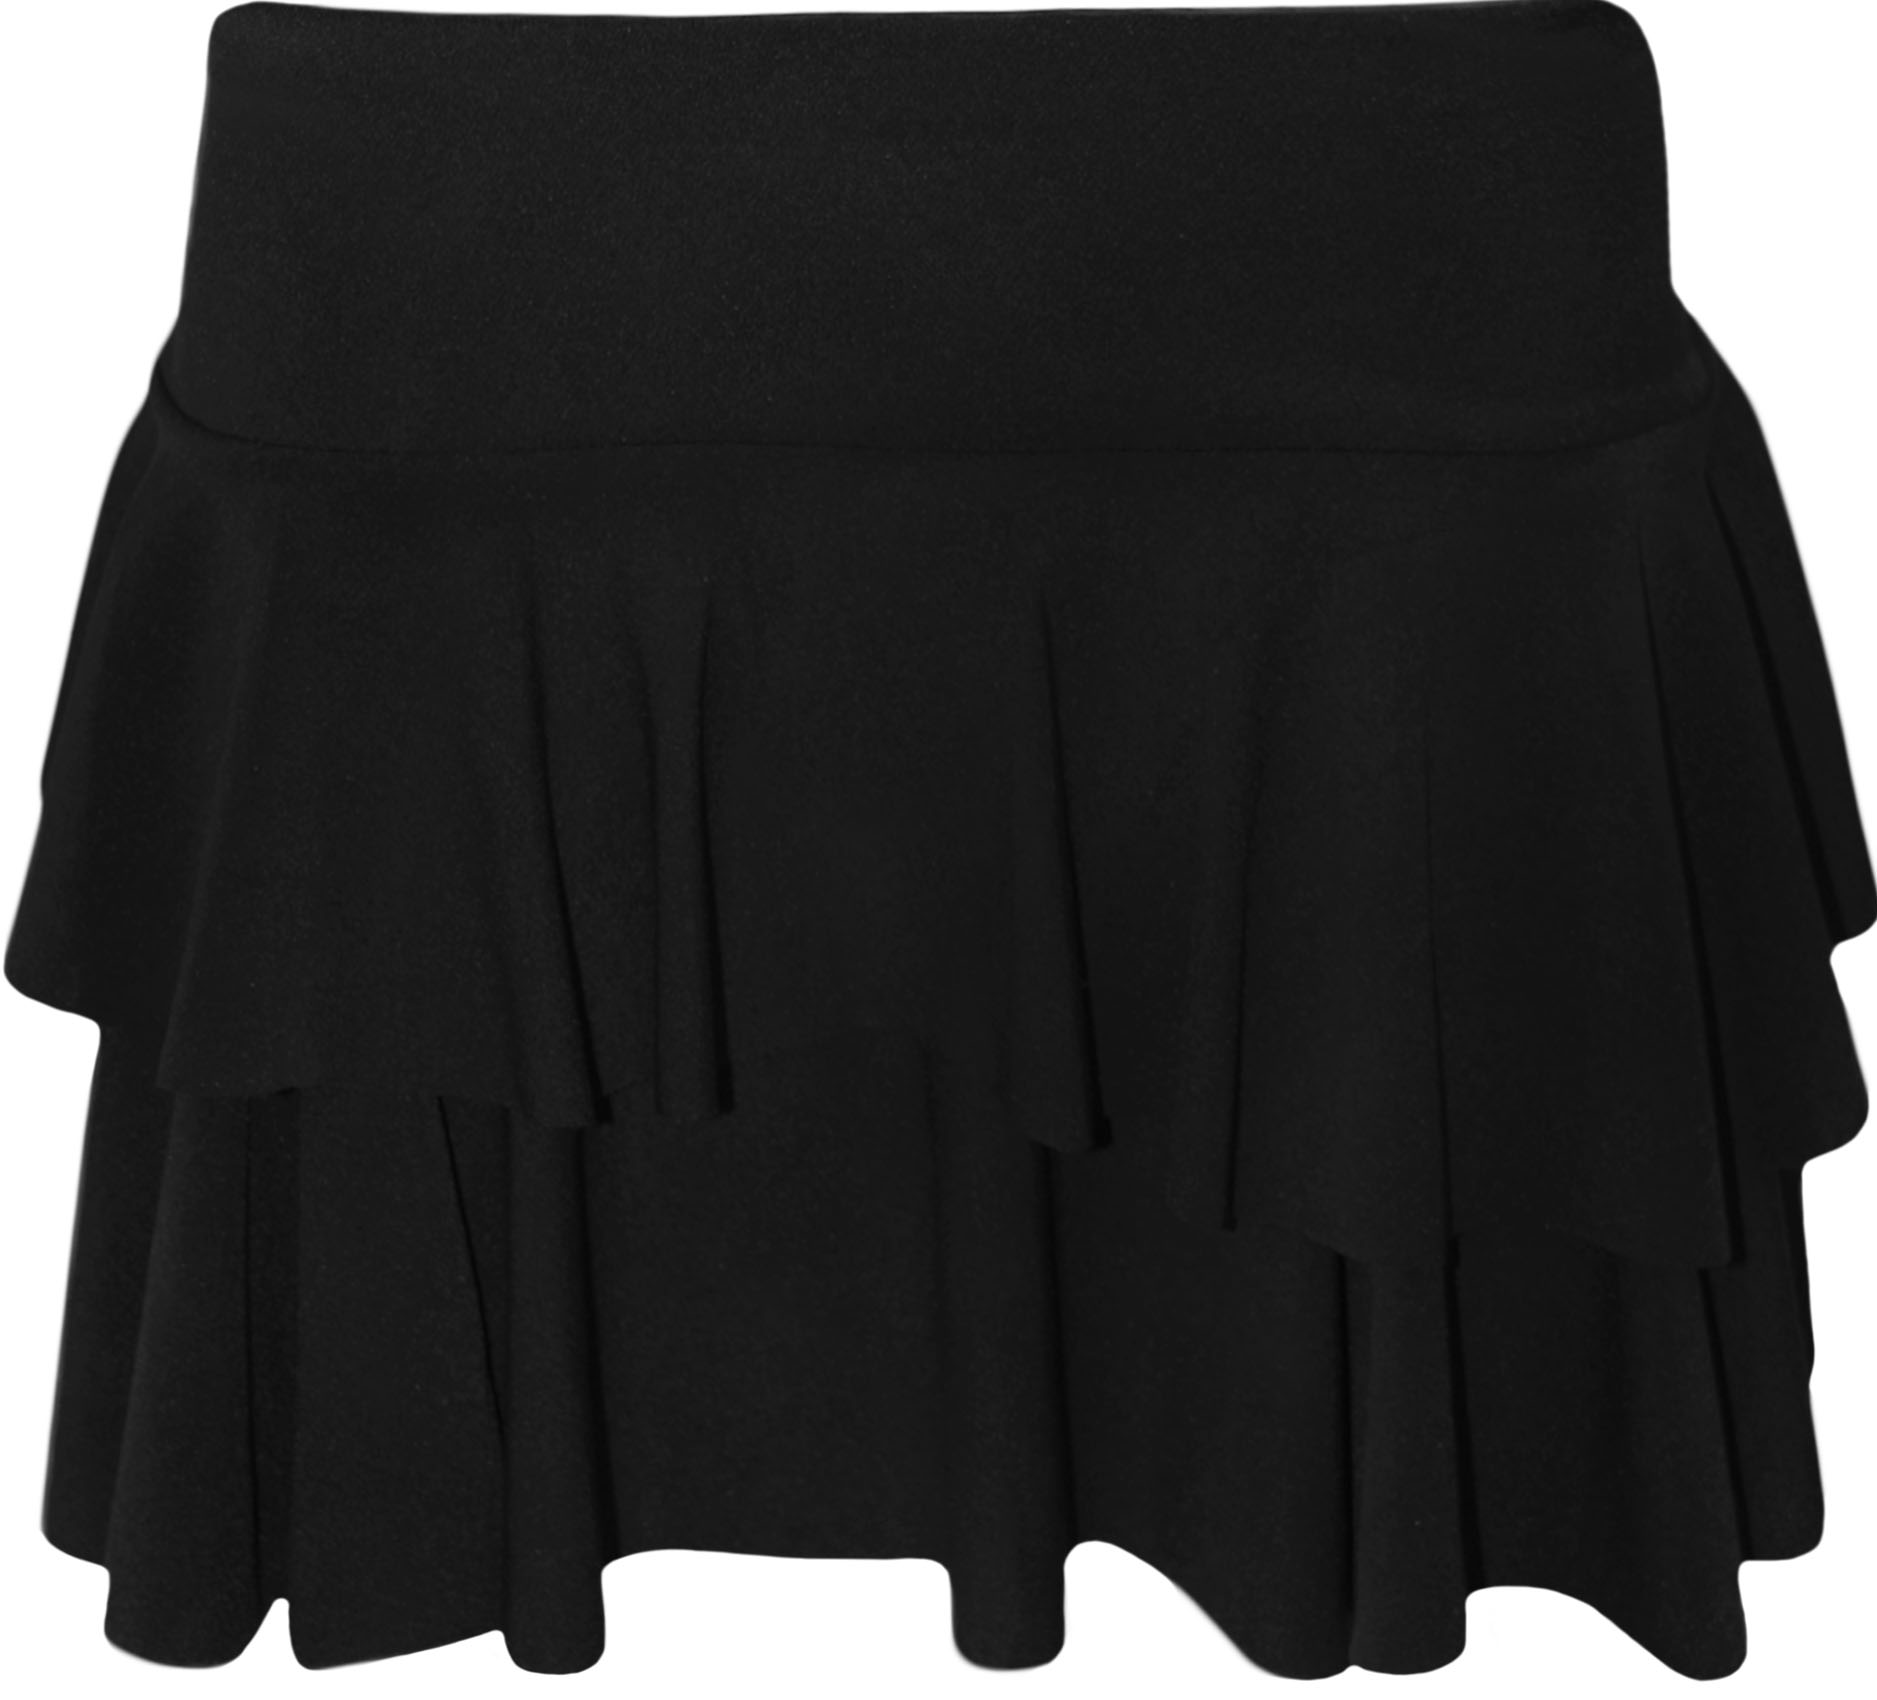 New-Ladies-Rara-Mini-Short-Skirt-Womens-Sizes-8-14